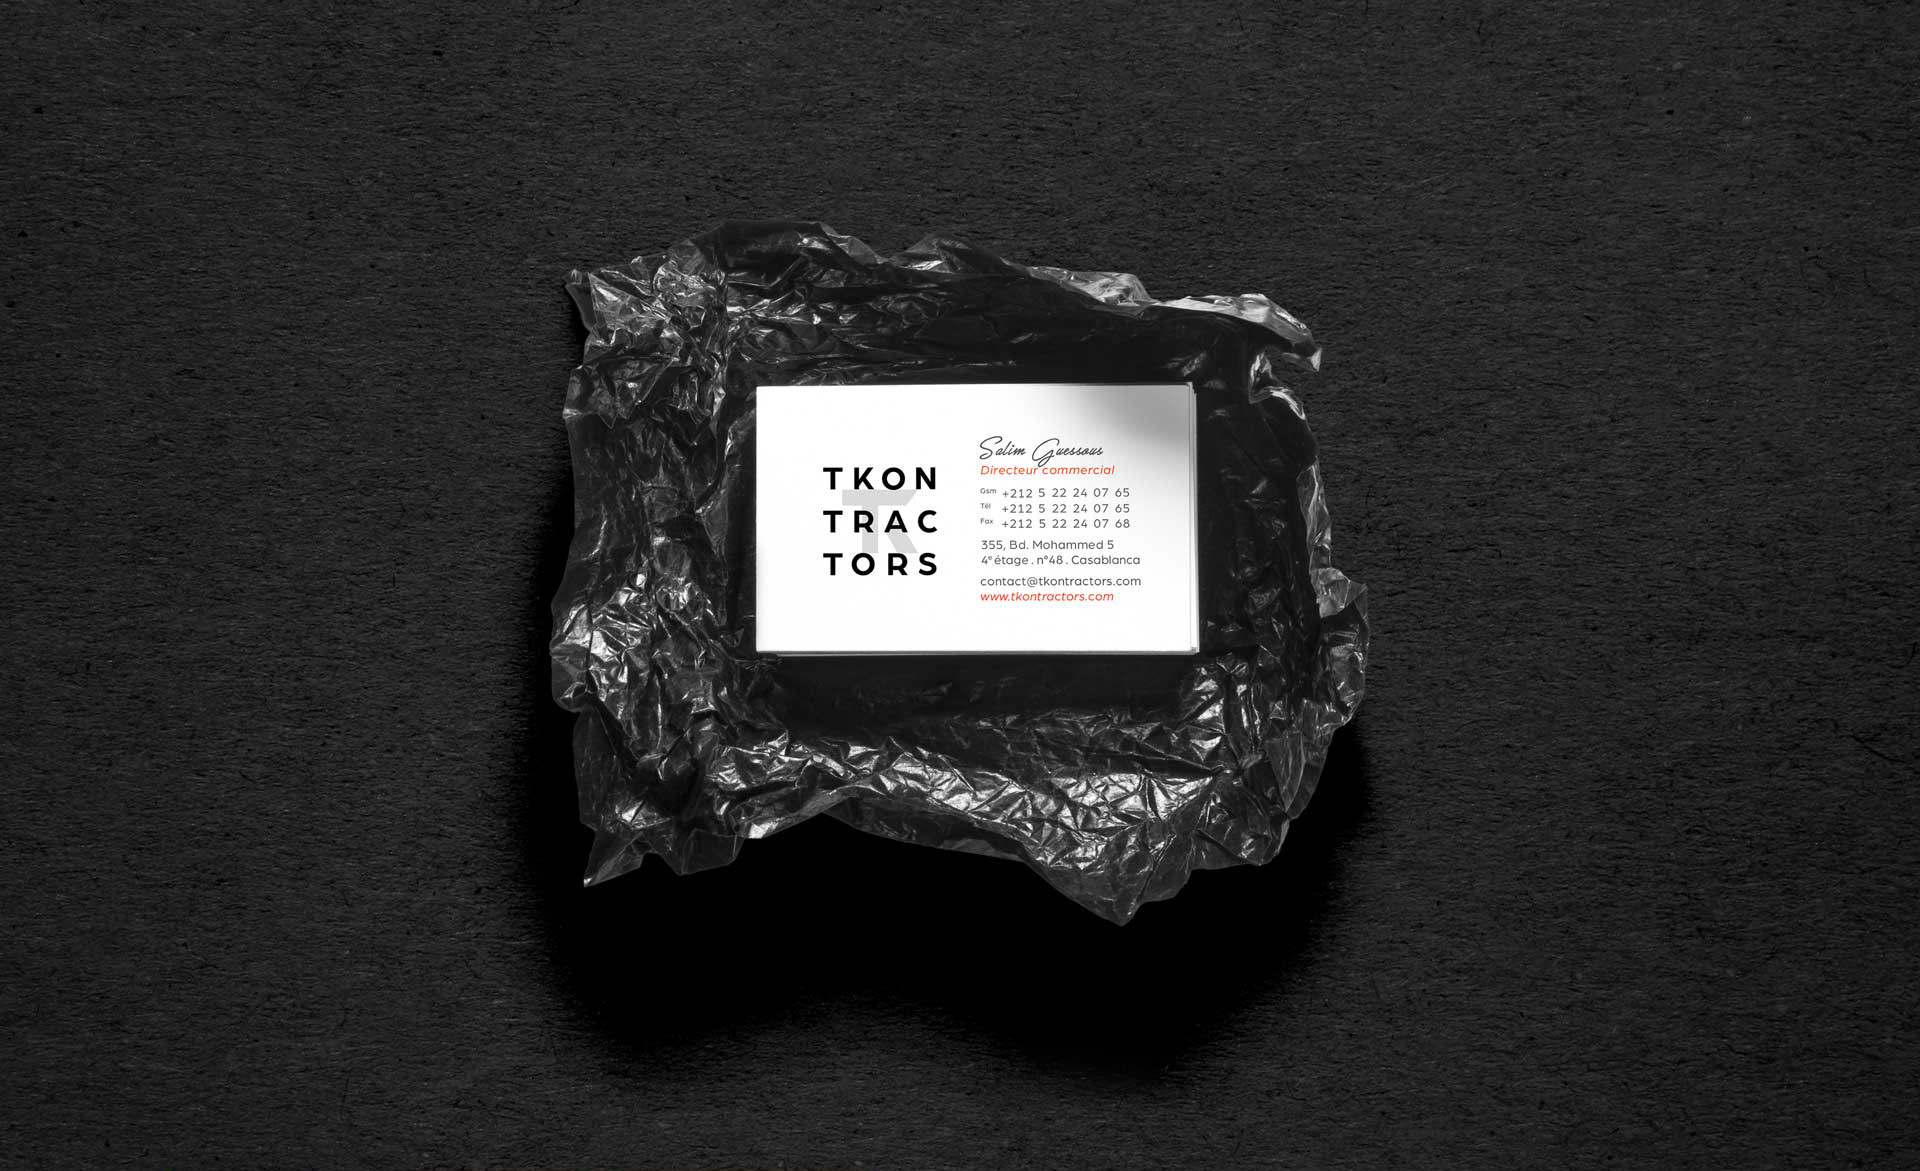 Tkontractors-Business-Cards-Mouhtadi-Design